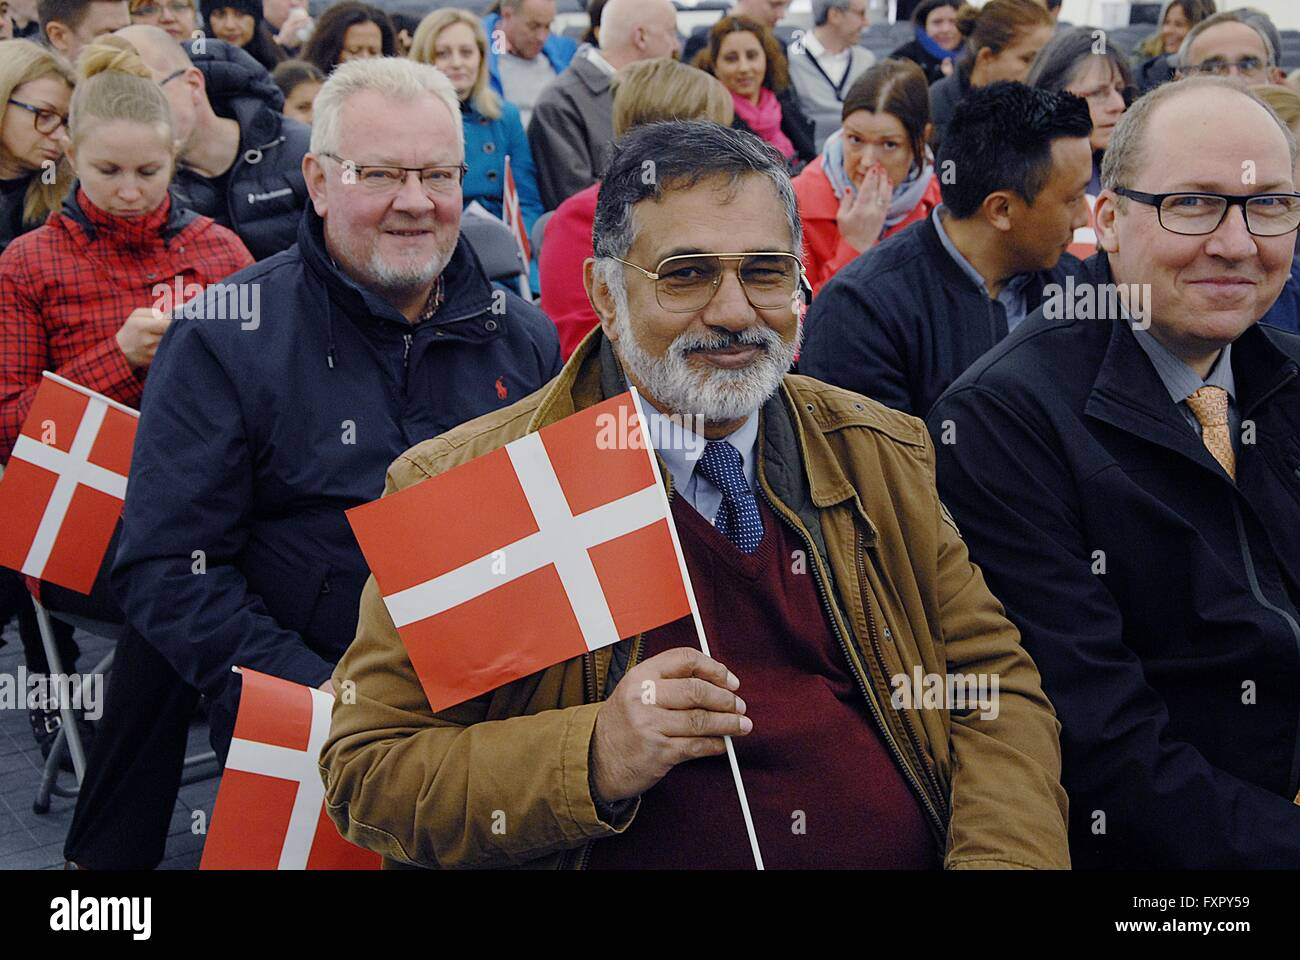 Copenhagen, Denmark. 17th April, 2016. Syed Tauqir Hassan Bokari from Pakistan punjab province celebrates his danish - Stock Image